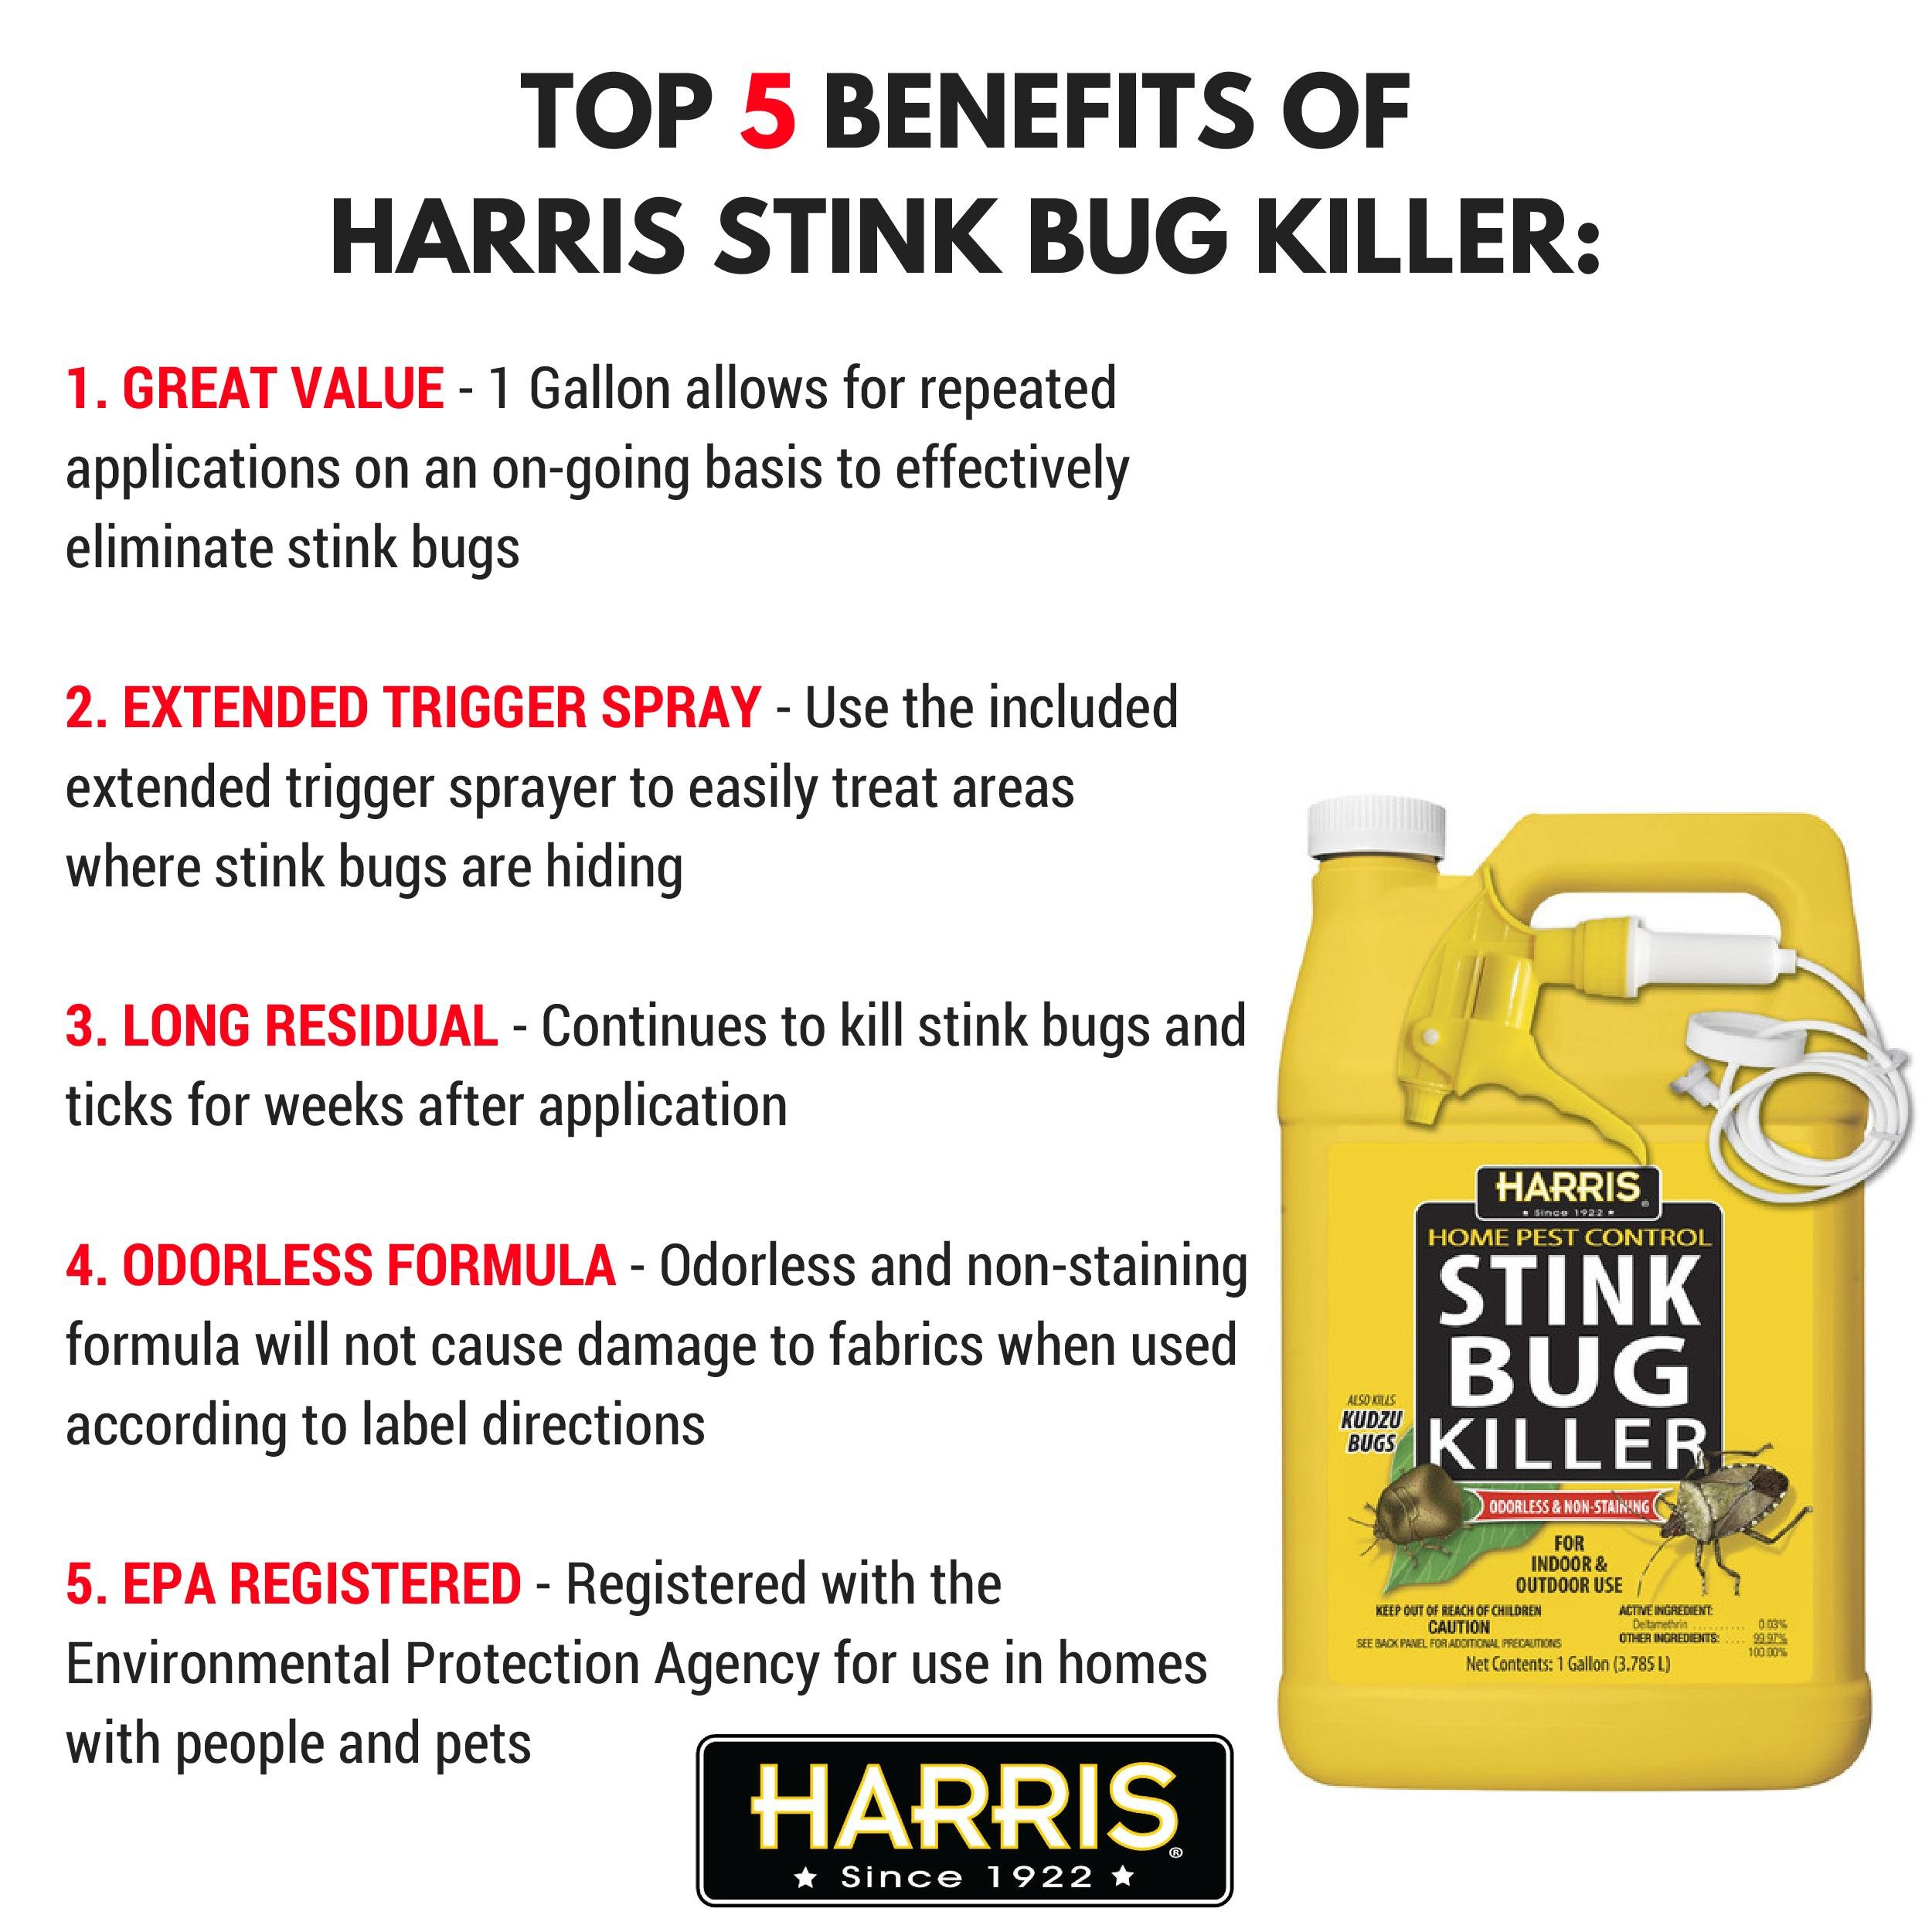 Harris Stink Bug Killer, Liquid Spray with Odorless and Non-Staining Formula (Gallon) by Harris